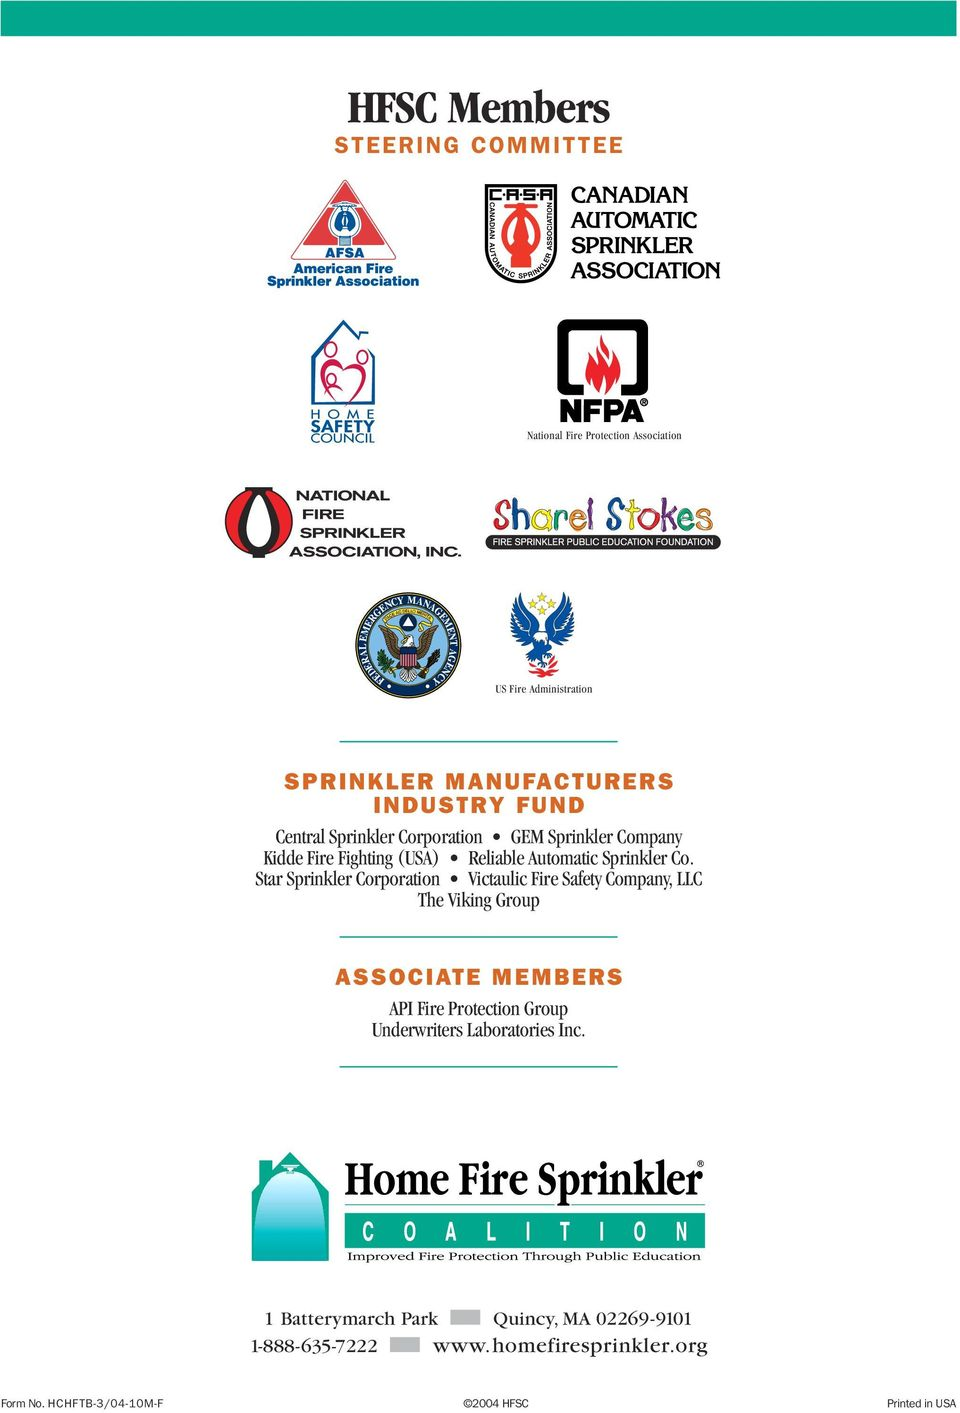 Star Sprinkler Corporation Victaulic Fire Safety Company, LLC The Viking Group ASSOCIATE MEMBERS API Fire Protection Group